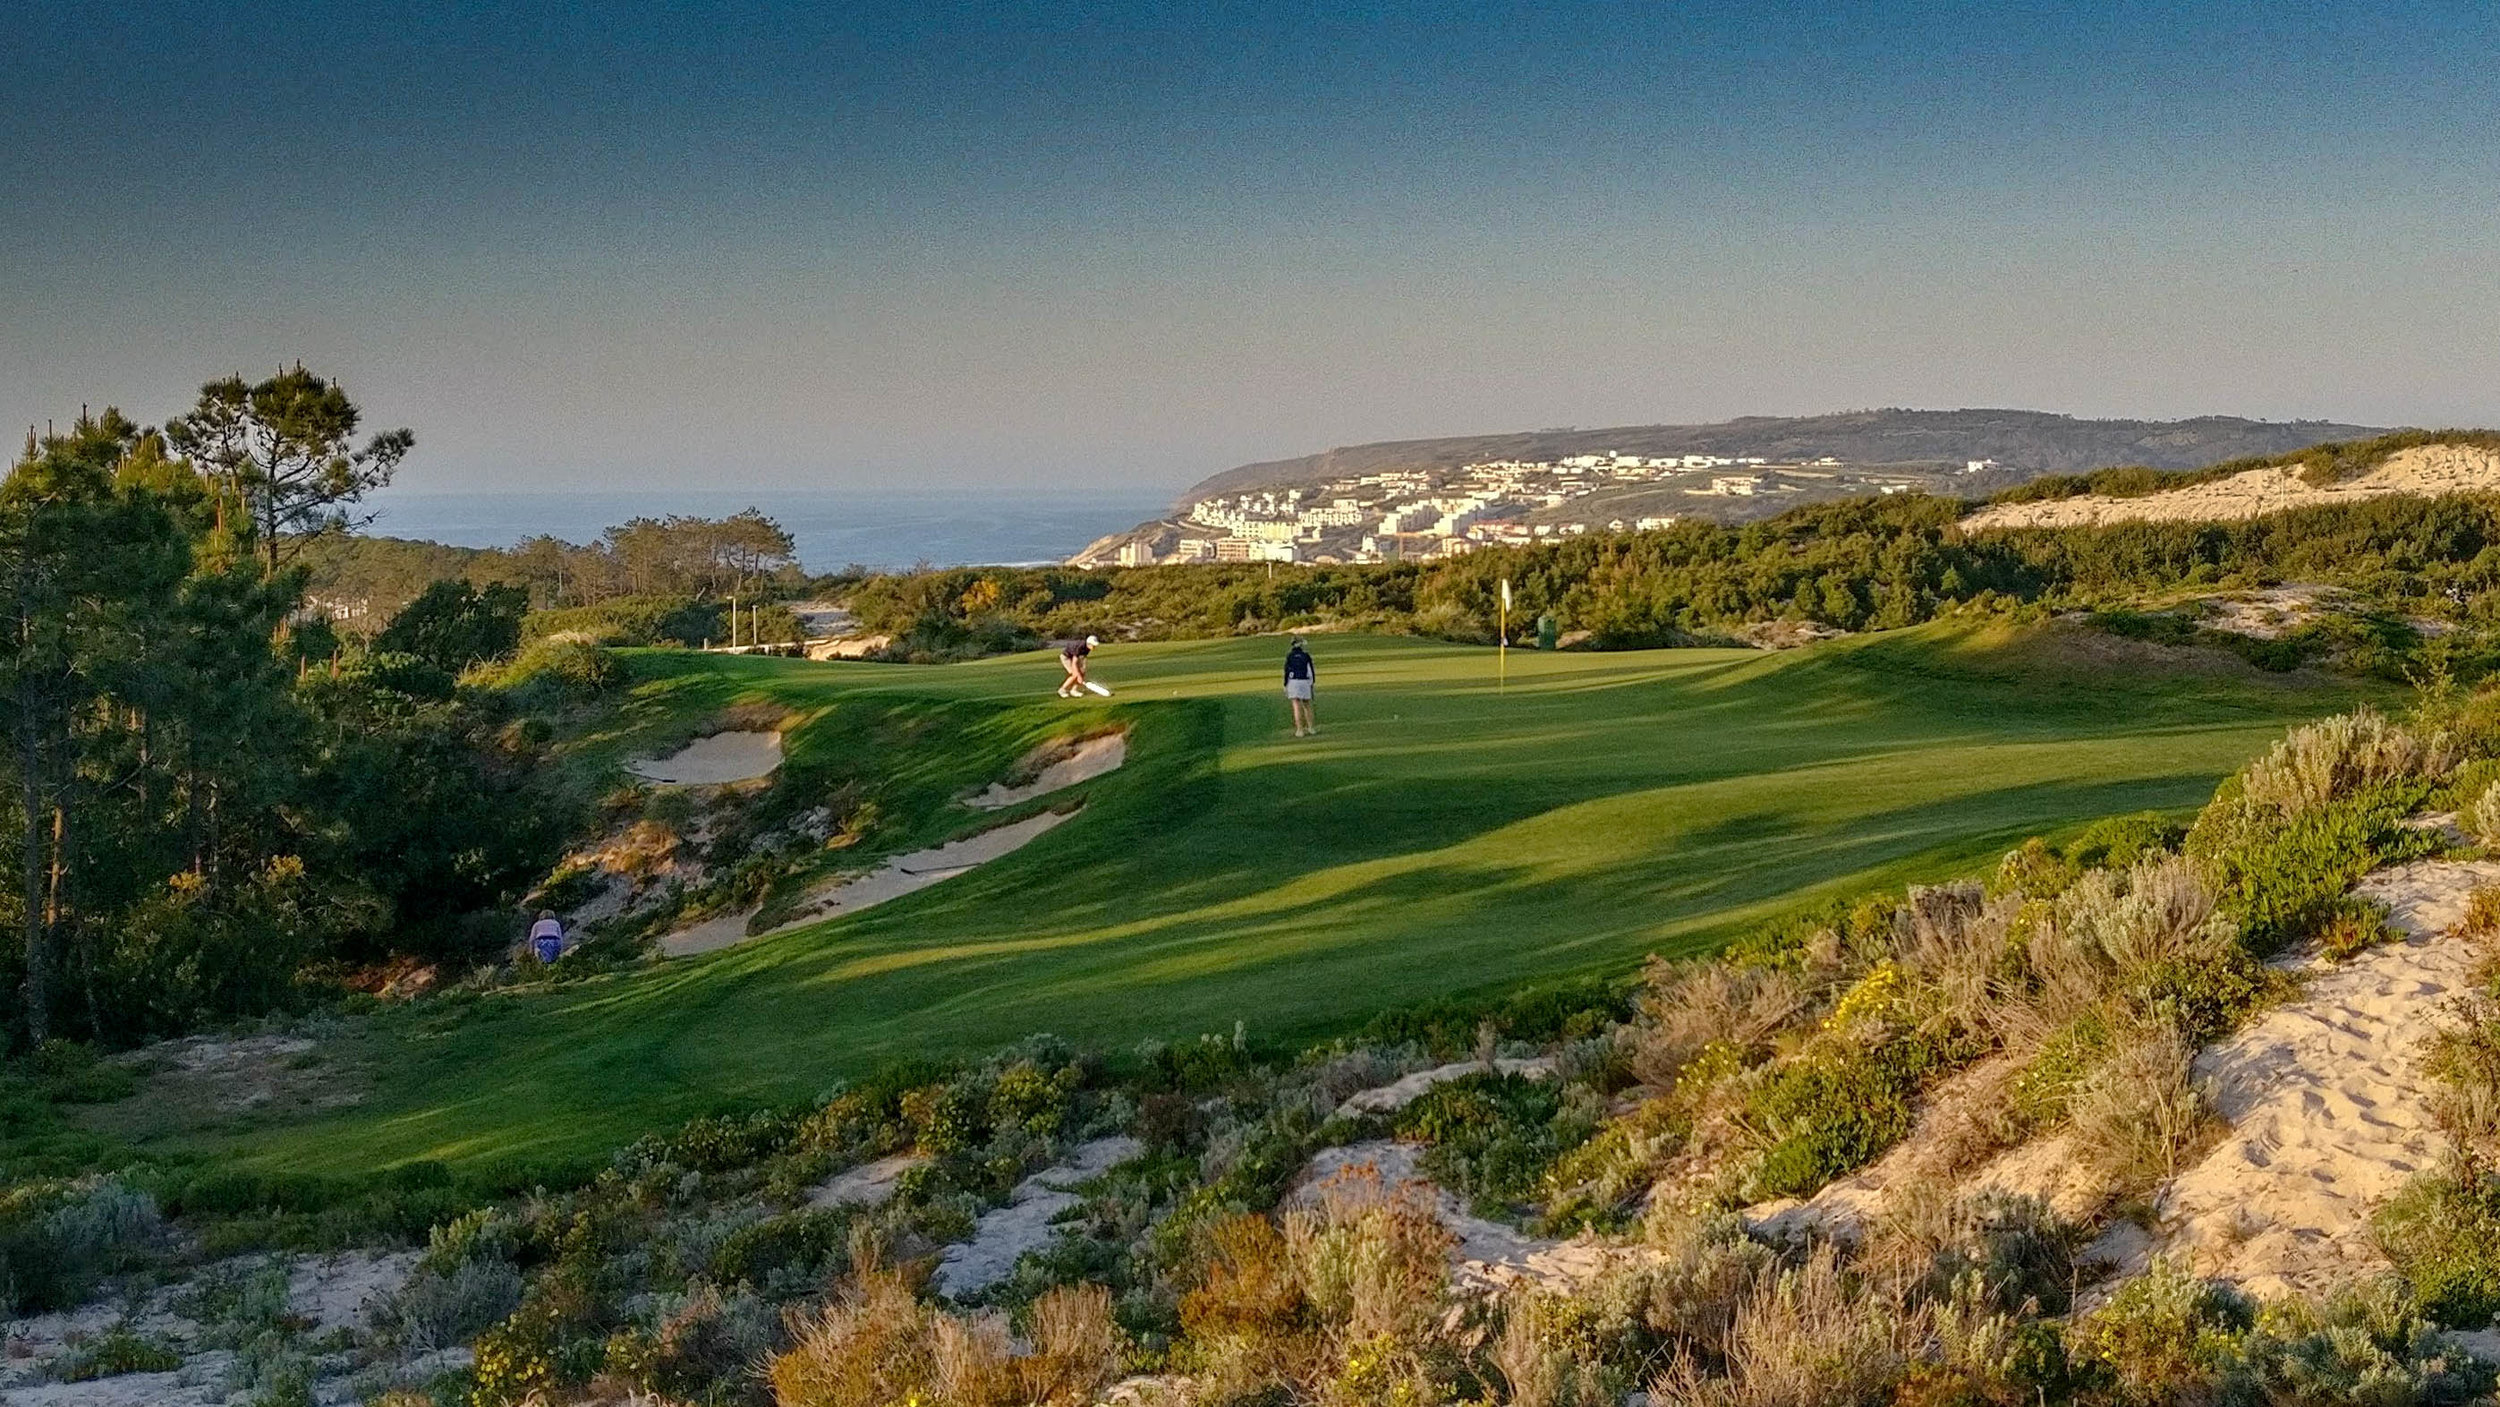 West Cliffs opened in 2017 and has already gained the reputation of being one of the best courses in Europe.